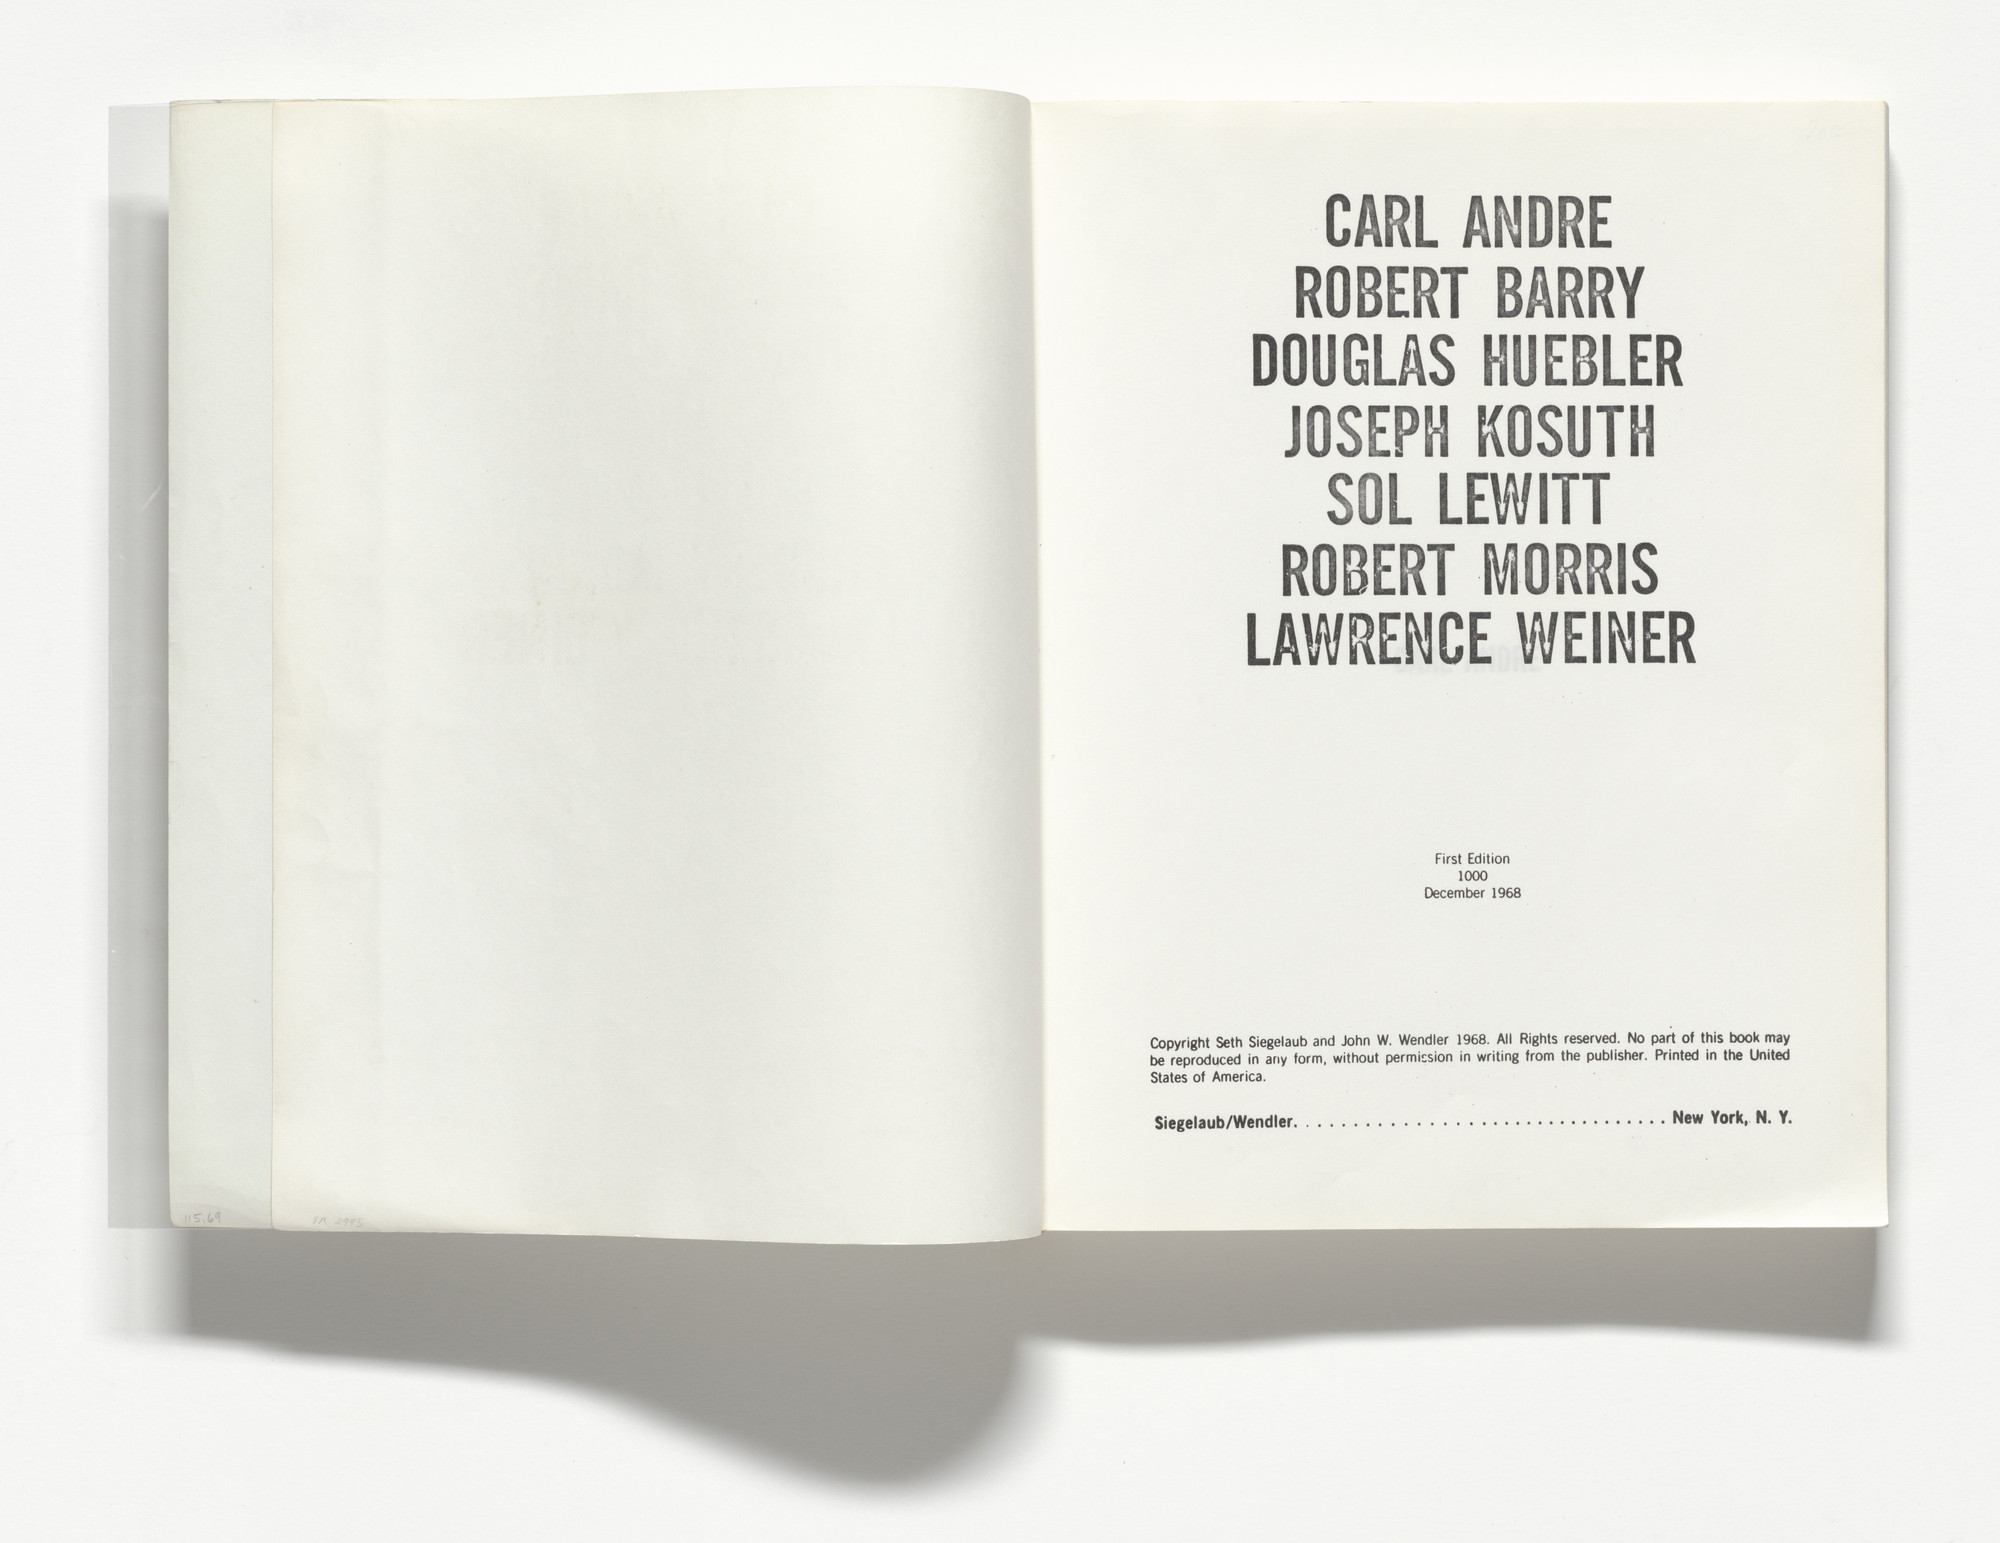 Various Artists, Lawrence Weiner, Robert Morris, Joseph Kosuth, Douglas Huebler, Robert Barry, Sol LeWitt, Carl Andre. Untitled (Xerox Book). 1968